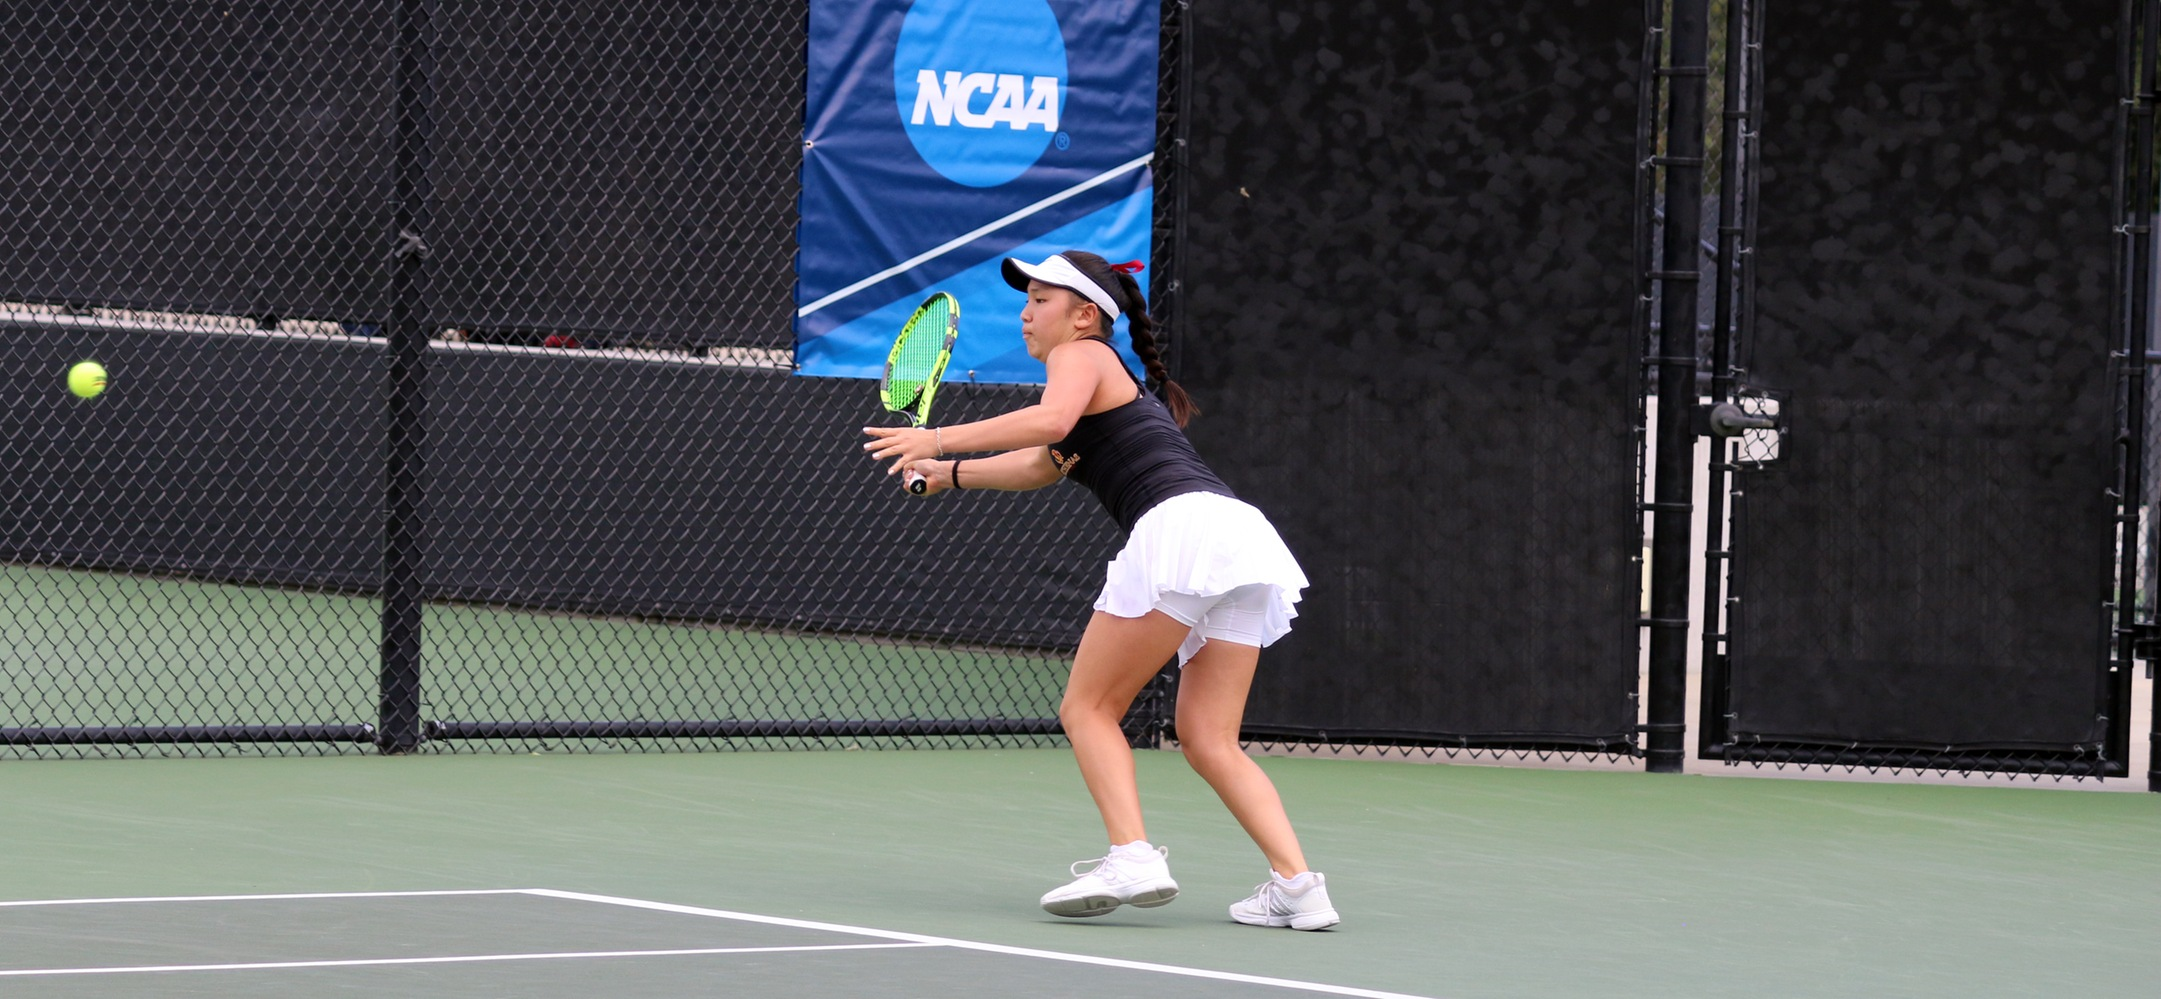 Sydney Lee won 6-0, 6-0 in singles and 8-3 in doubles as the Athenas opened NCAA play with a 5-0 win